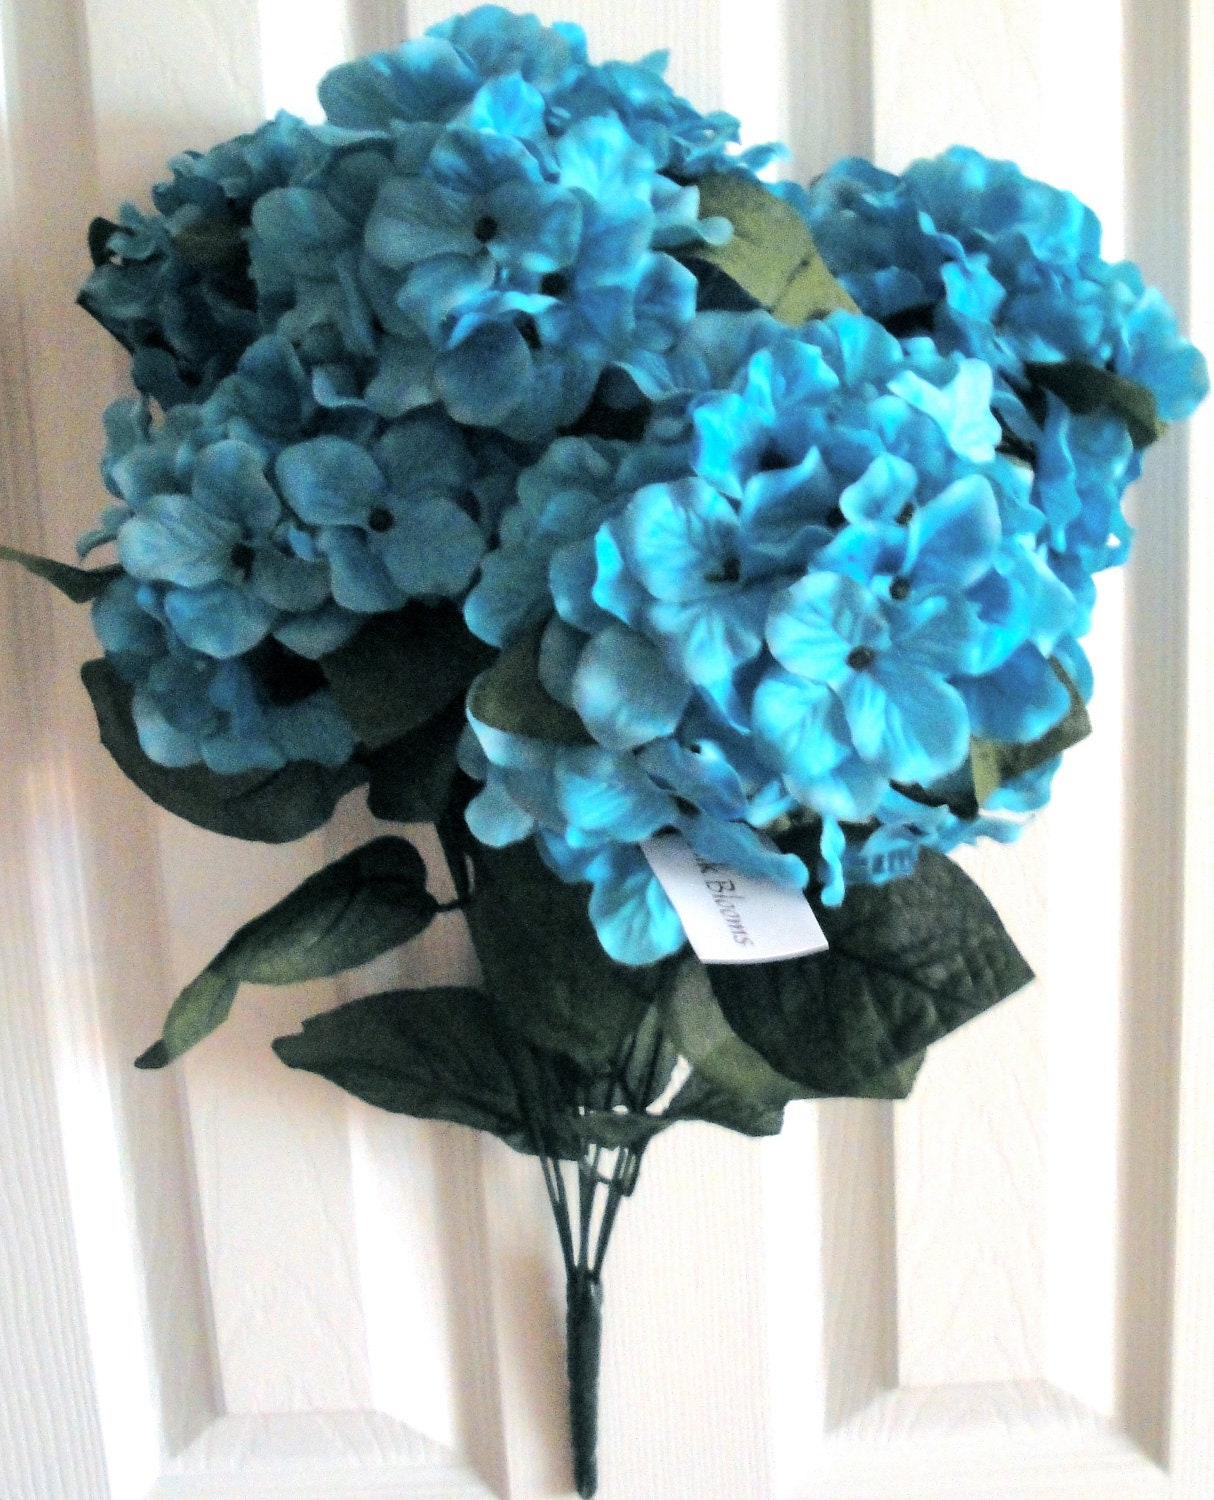 Tanday Luxury Teal Turquoise Hydrangea Bush 23 Inches By